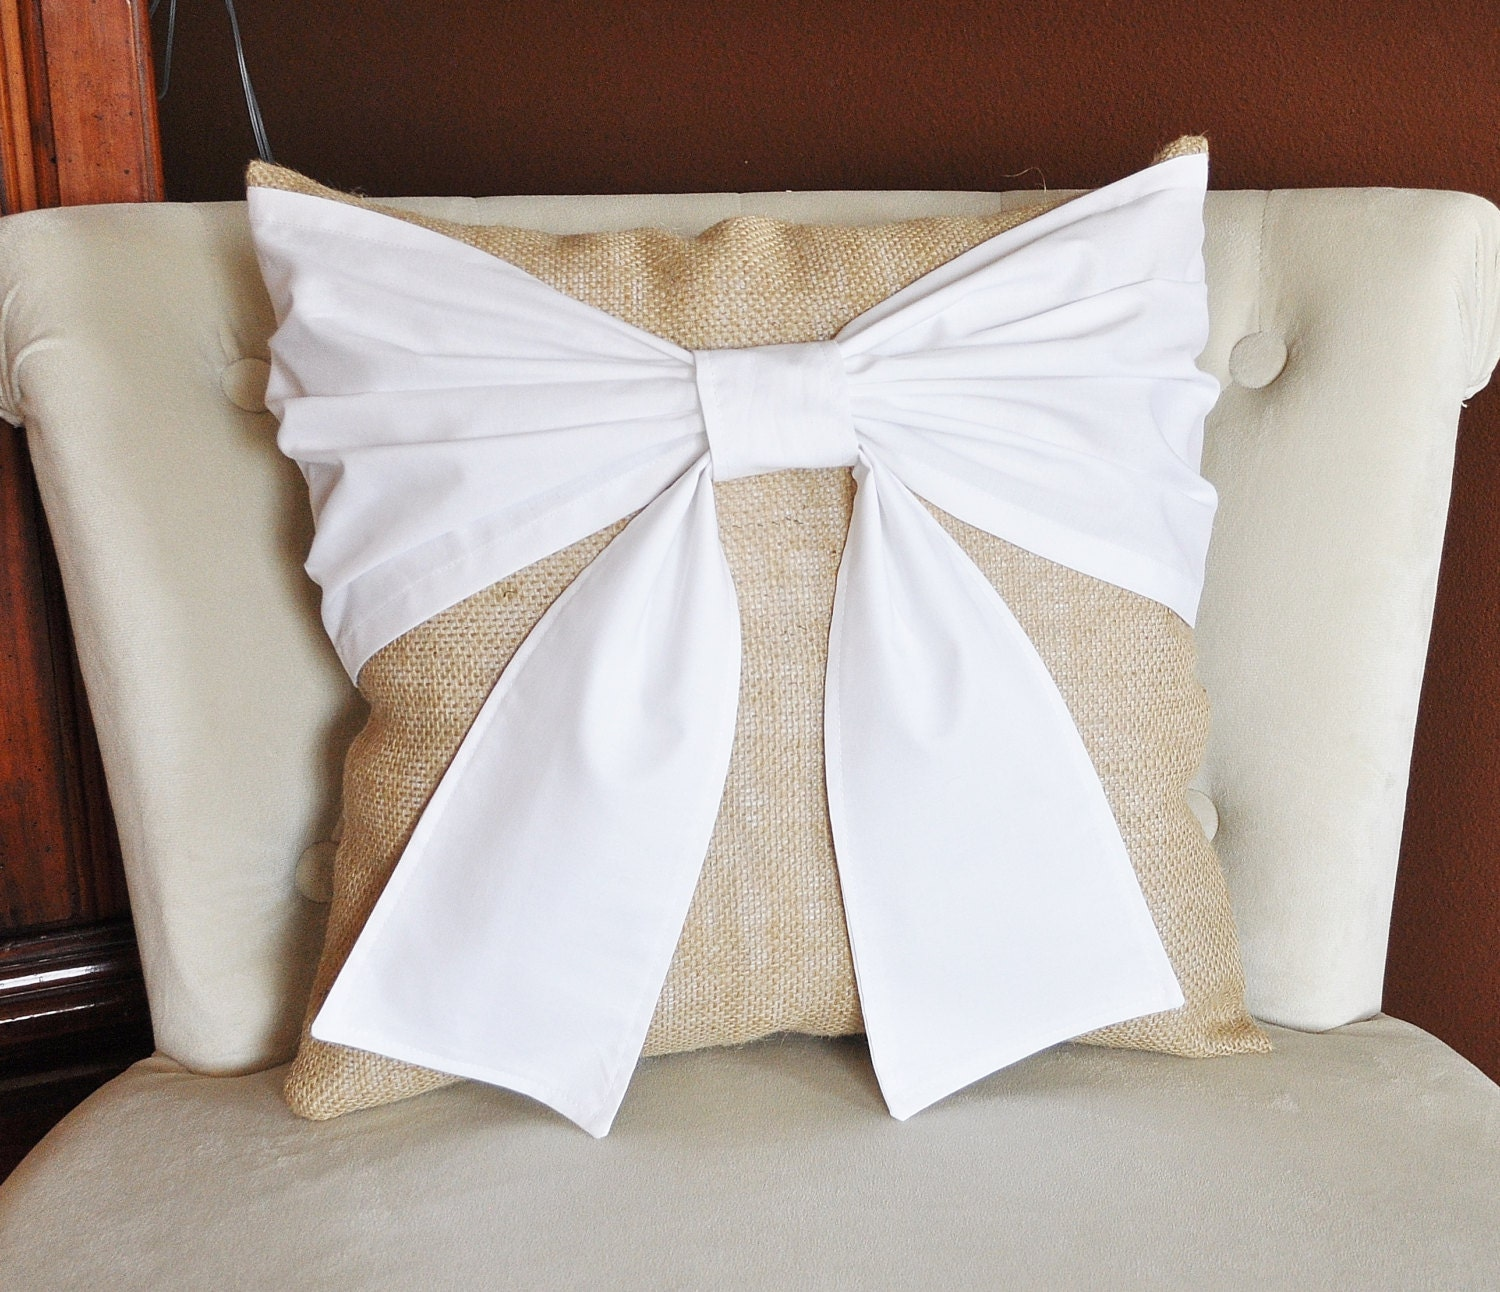 Throw Pillow With Bow : Throw Pillow White Bow on Burlap Pillow 14x14 Rustic Home